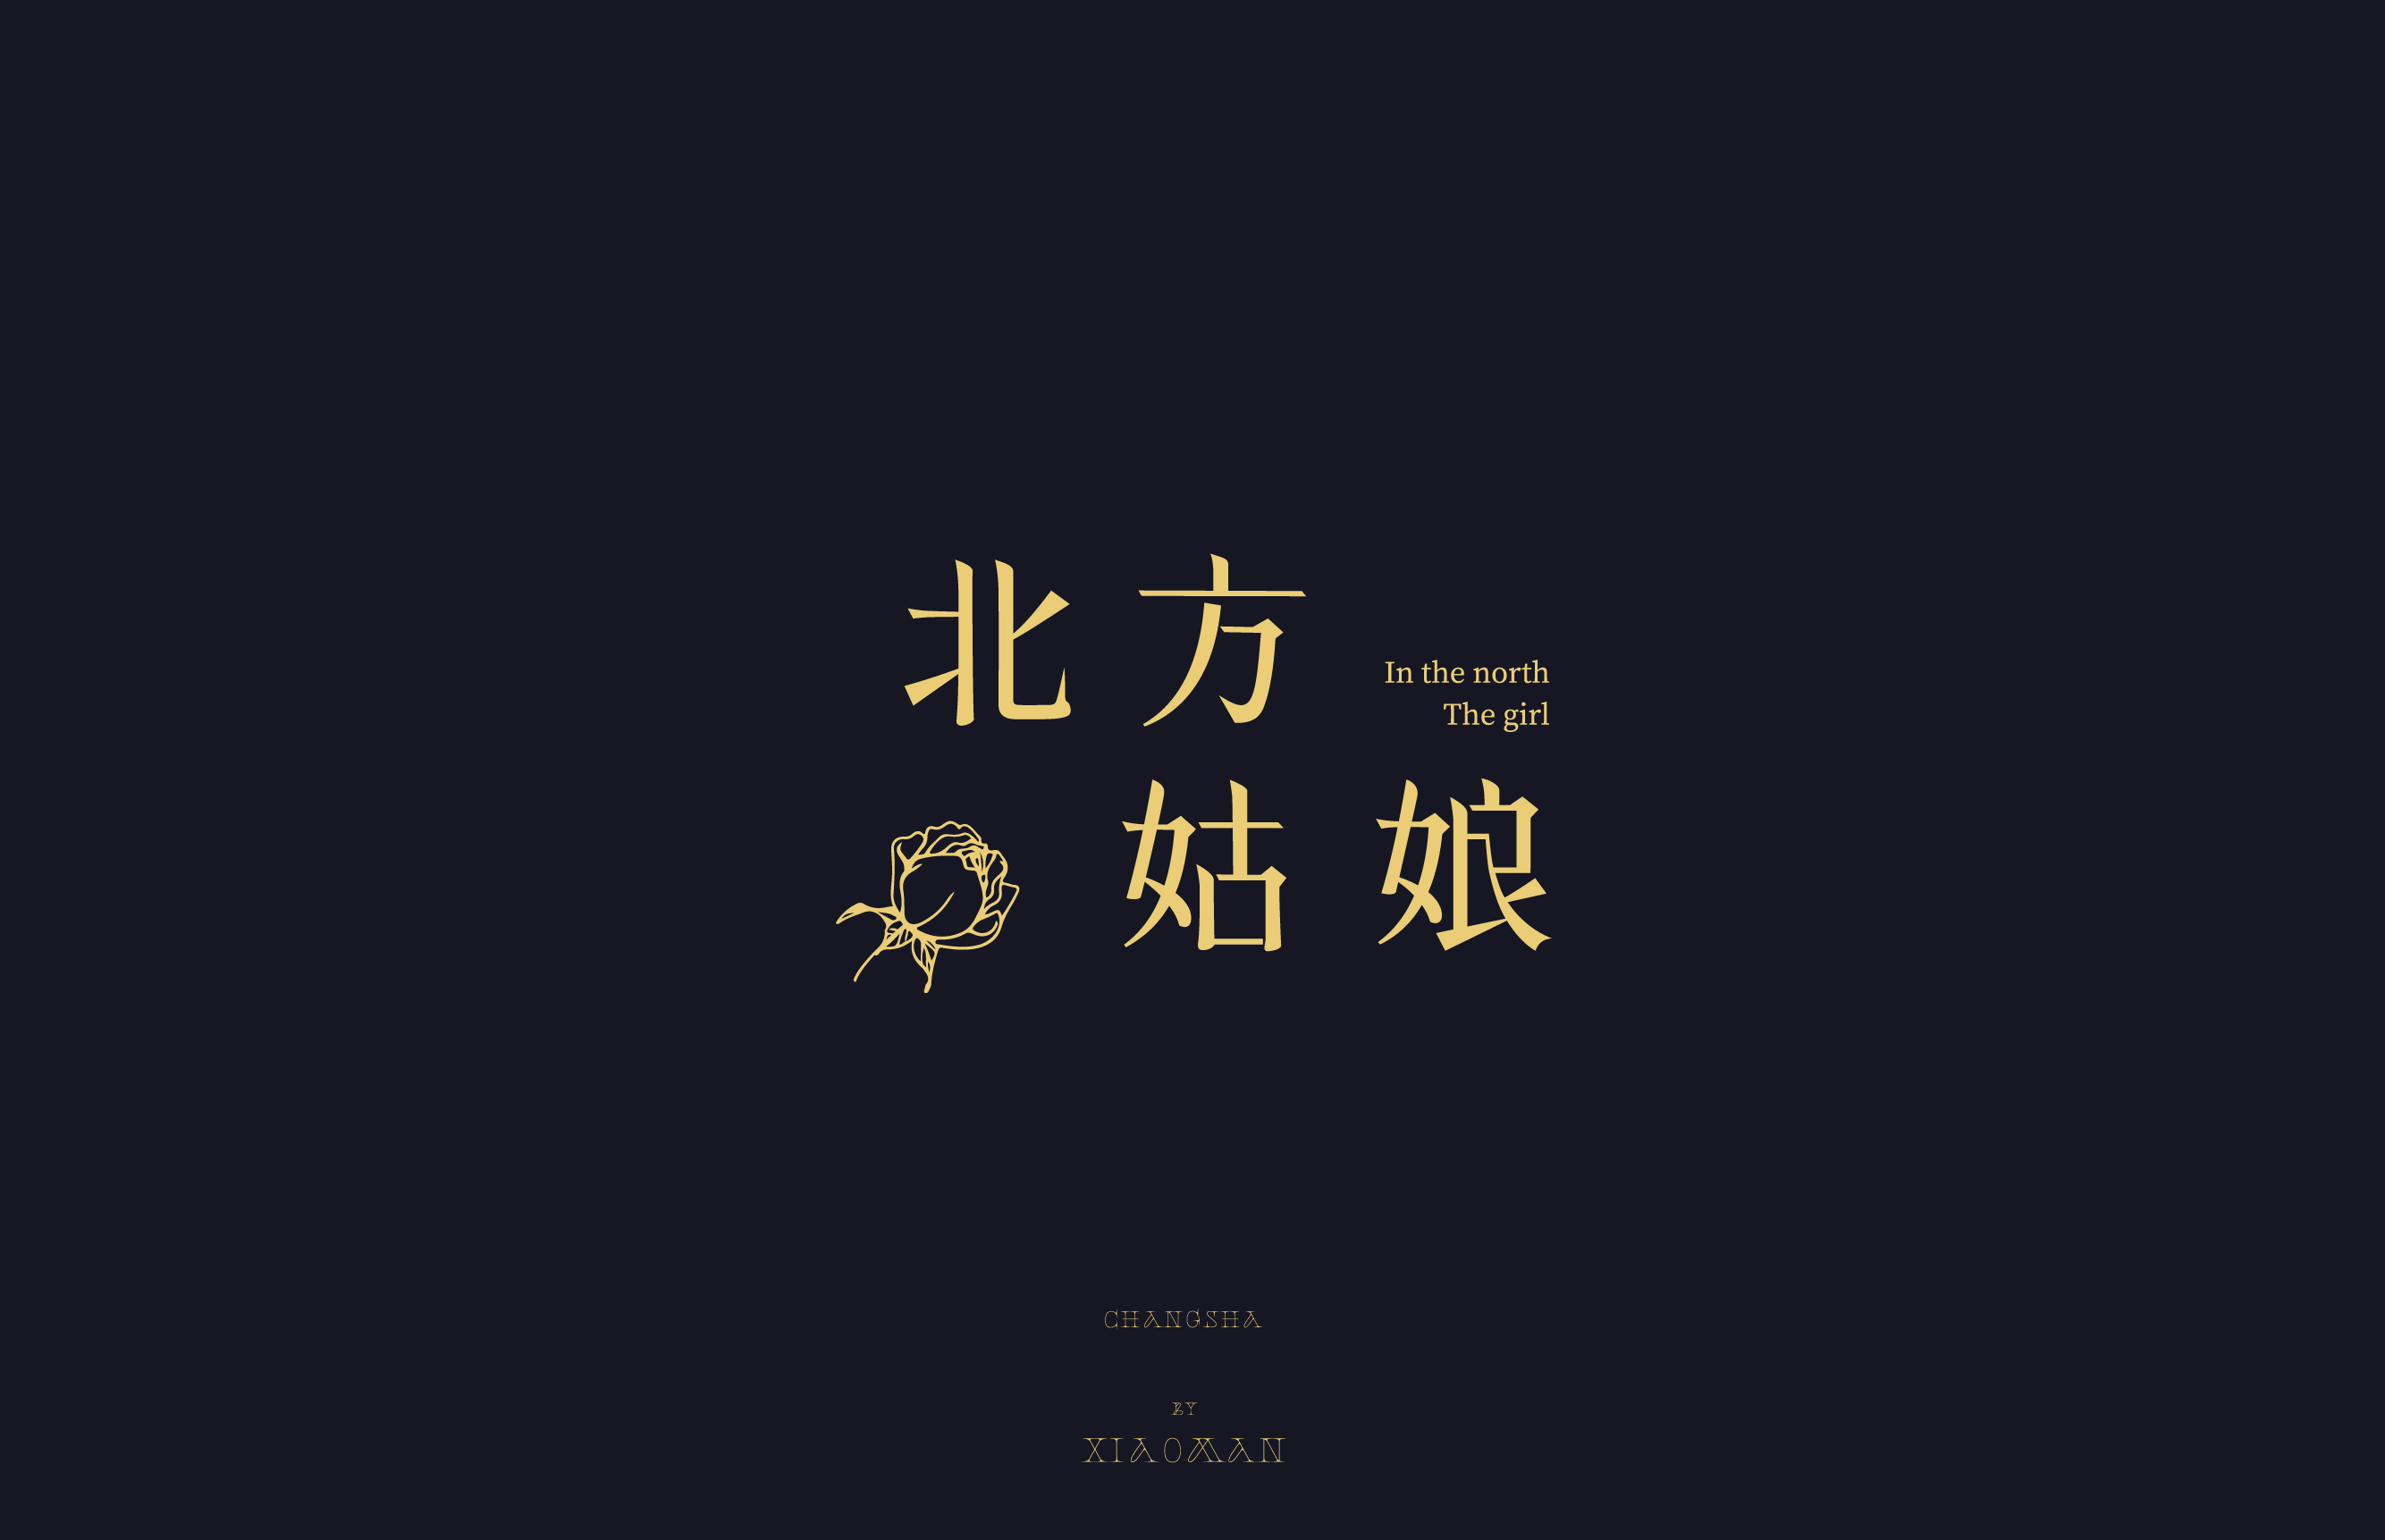 48P Collection of the latest Chinese font design schemes in 2021 #.247